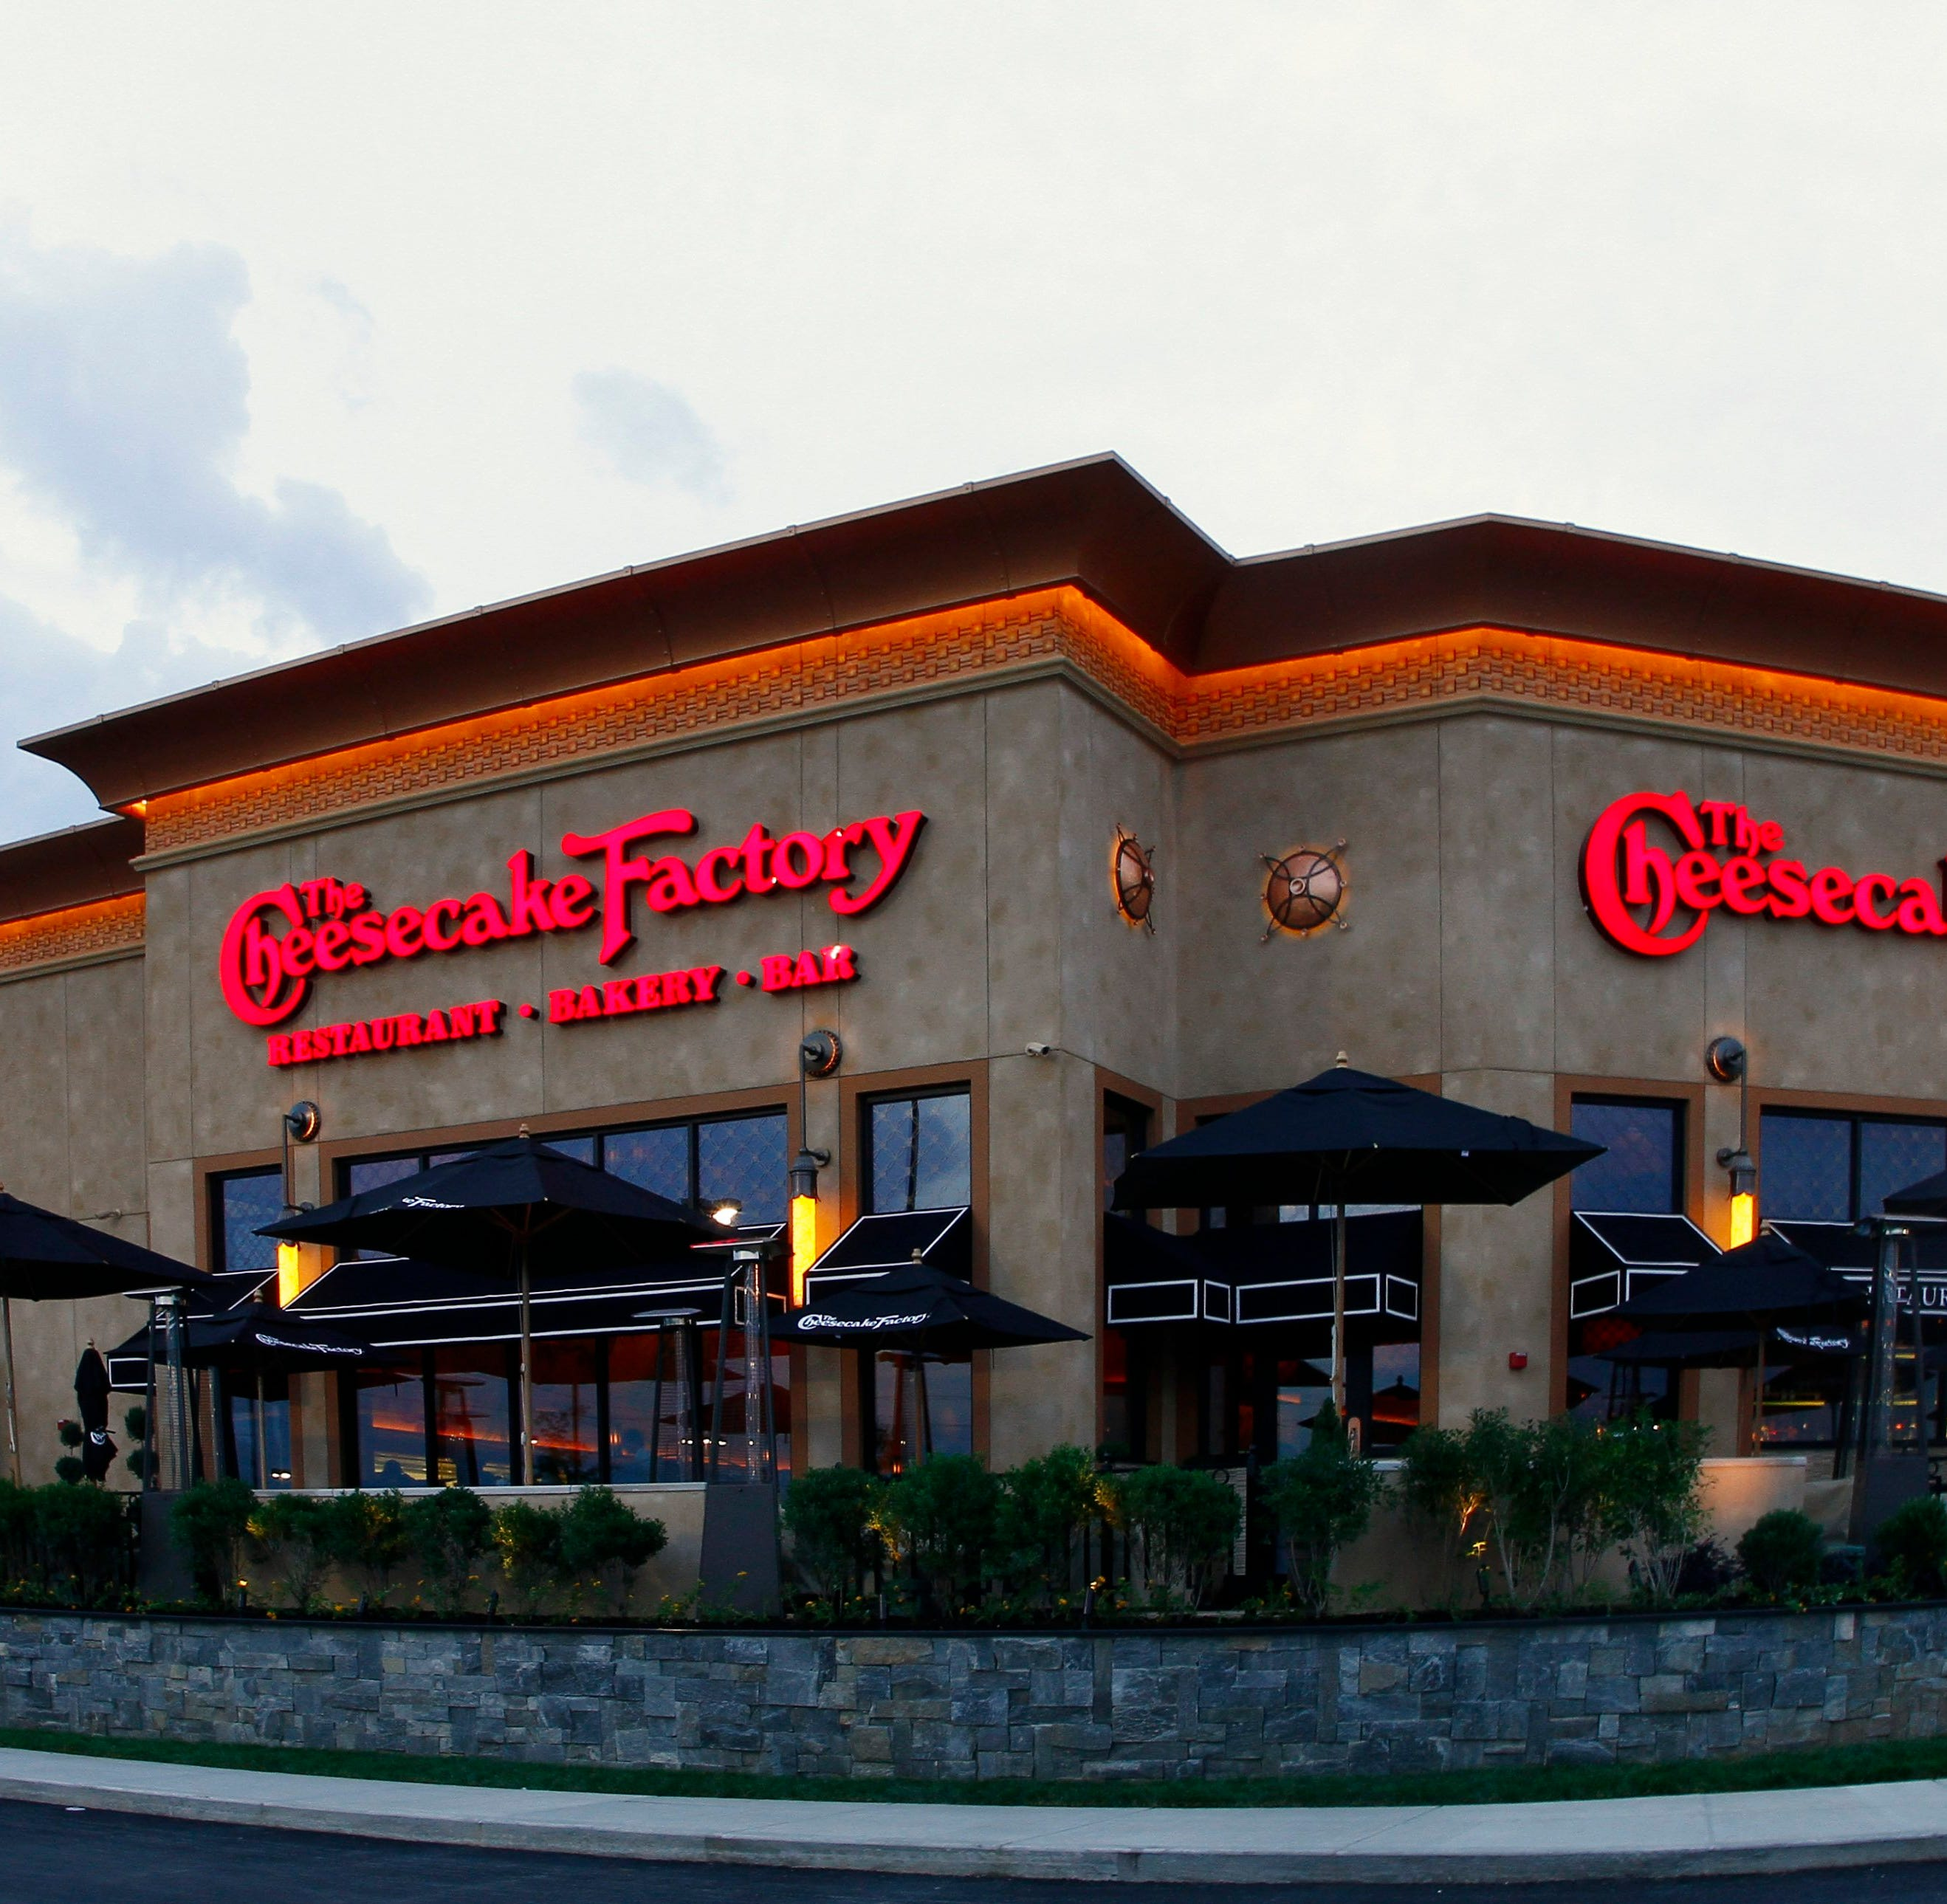 Tallahassee left wanting as rival Gainesville gets Cheesecake Factory and Dave & Buster's